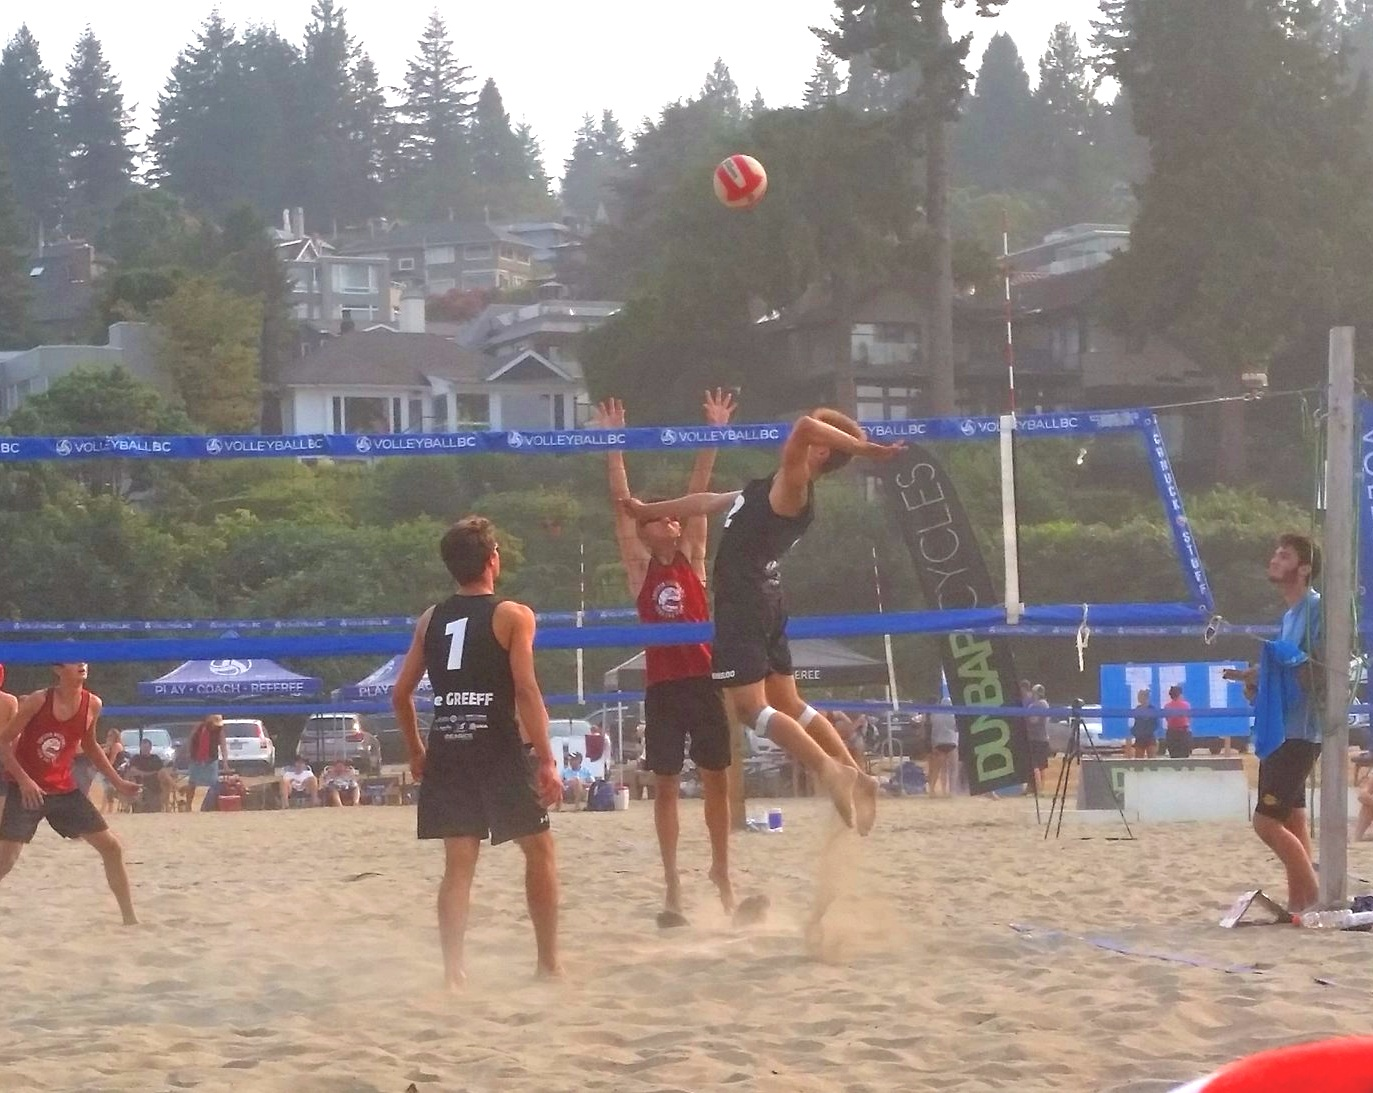 Hawks Beach Volleyball Vancouver, BC - High Five